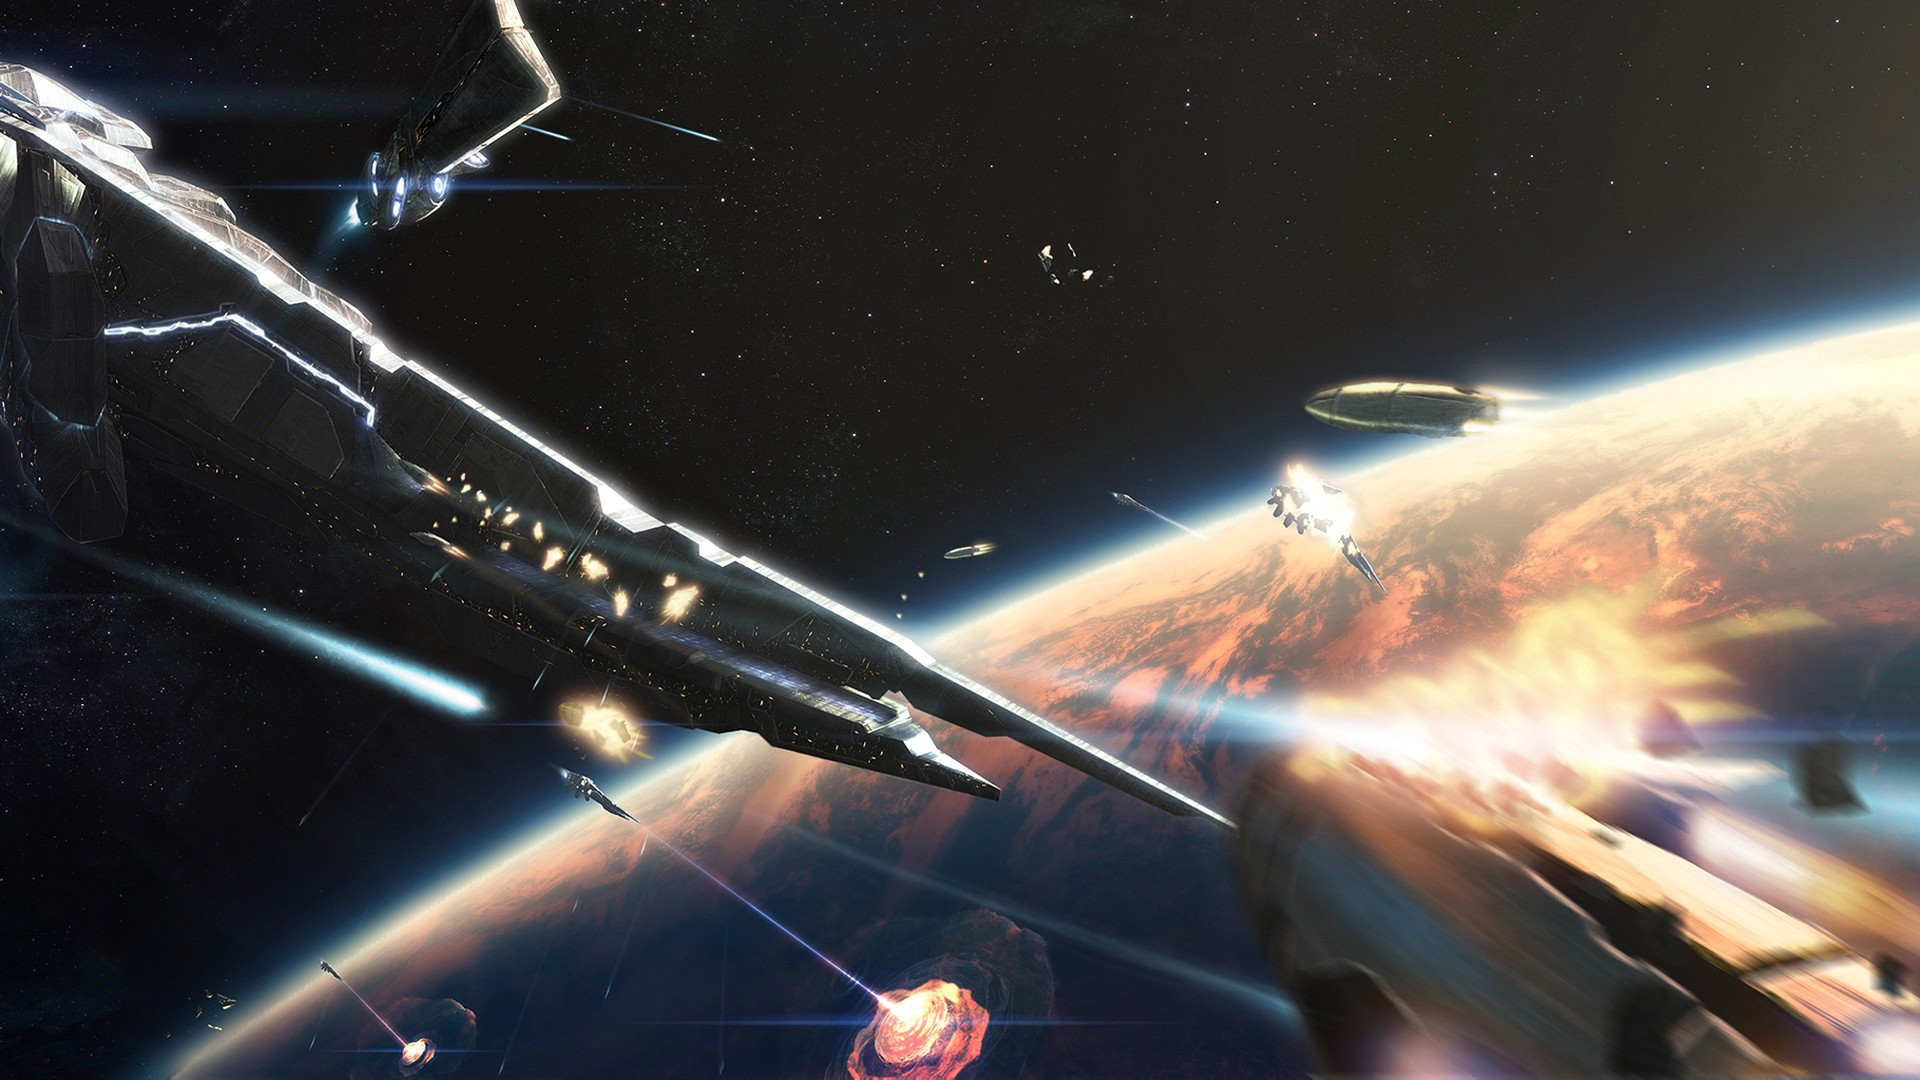 epic space battles wallpaper 75 images